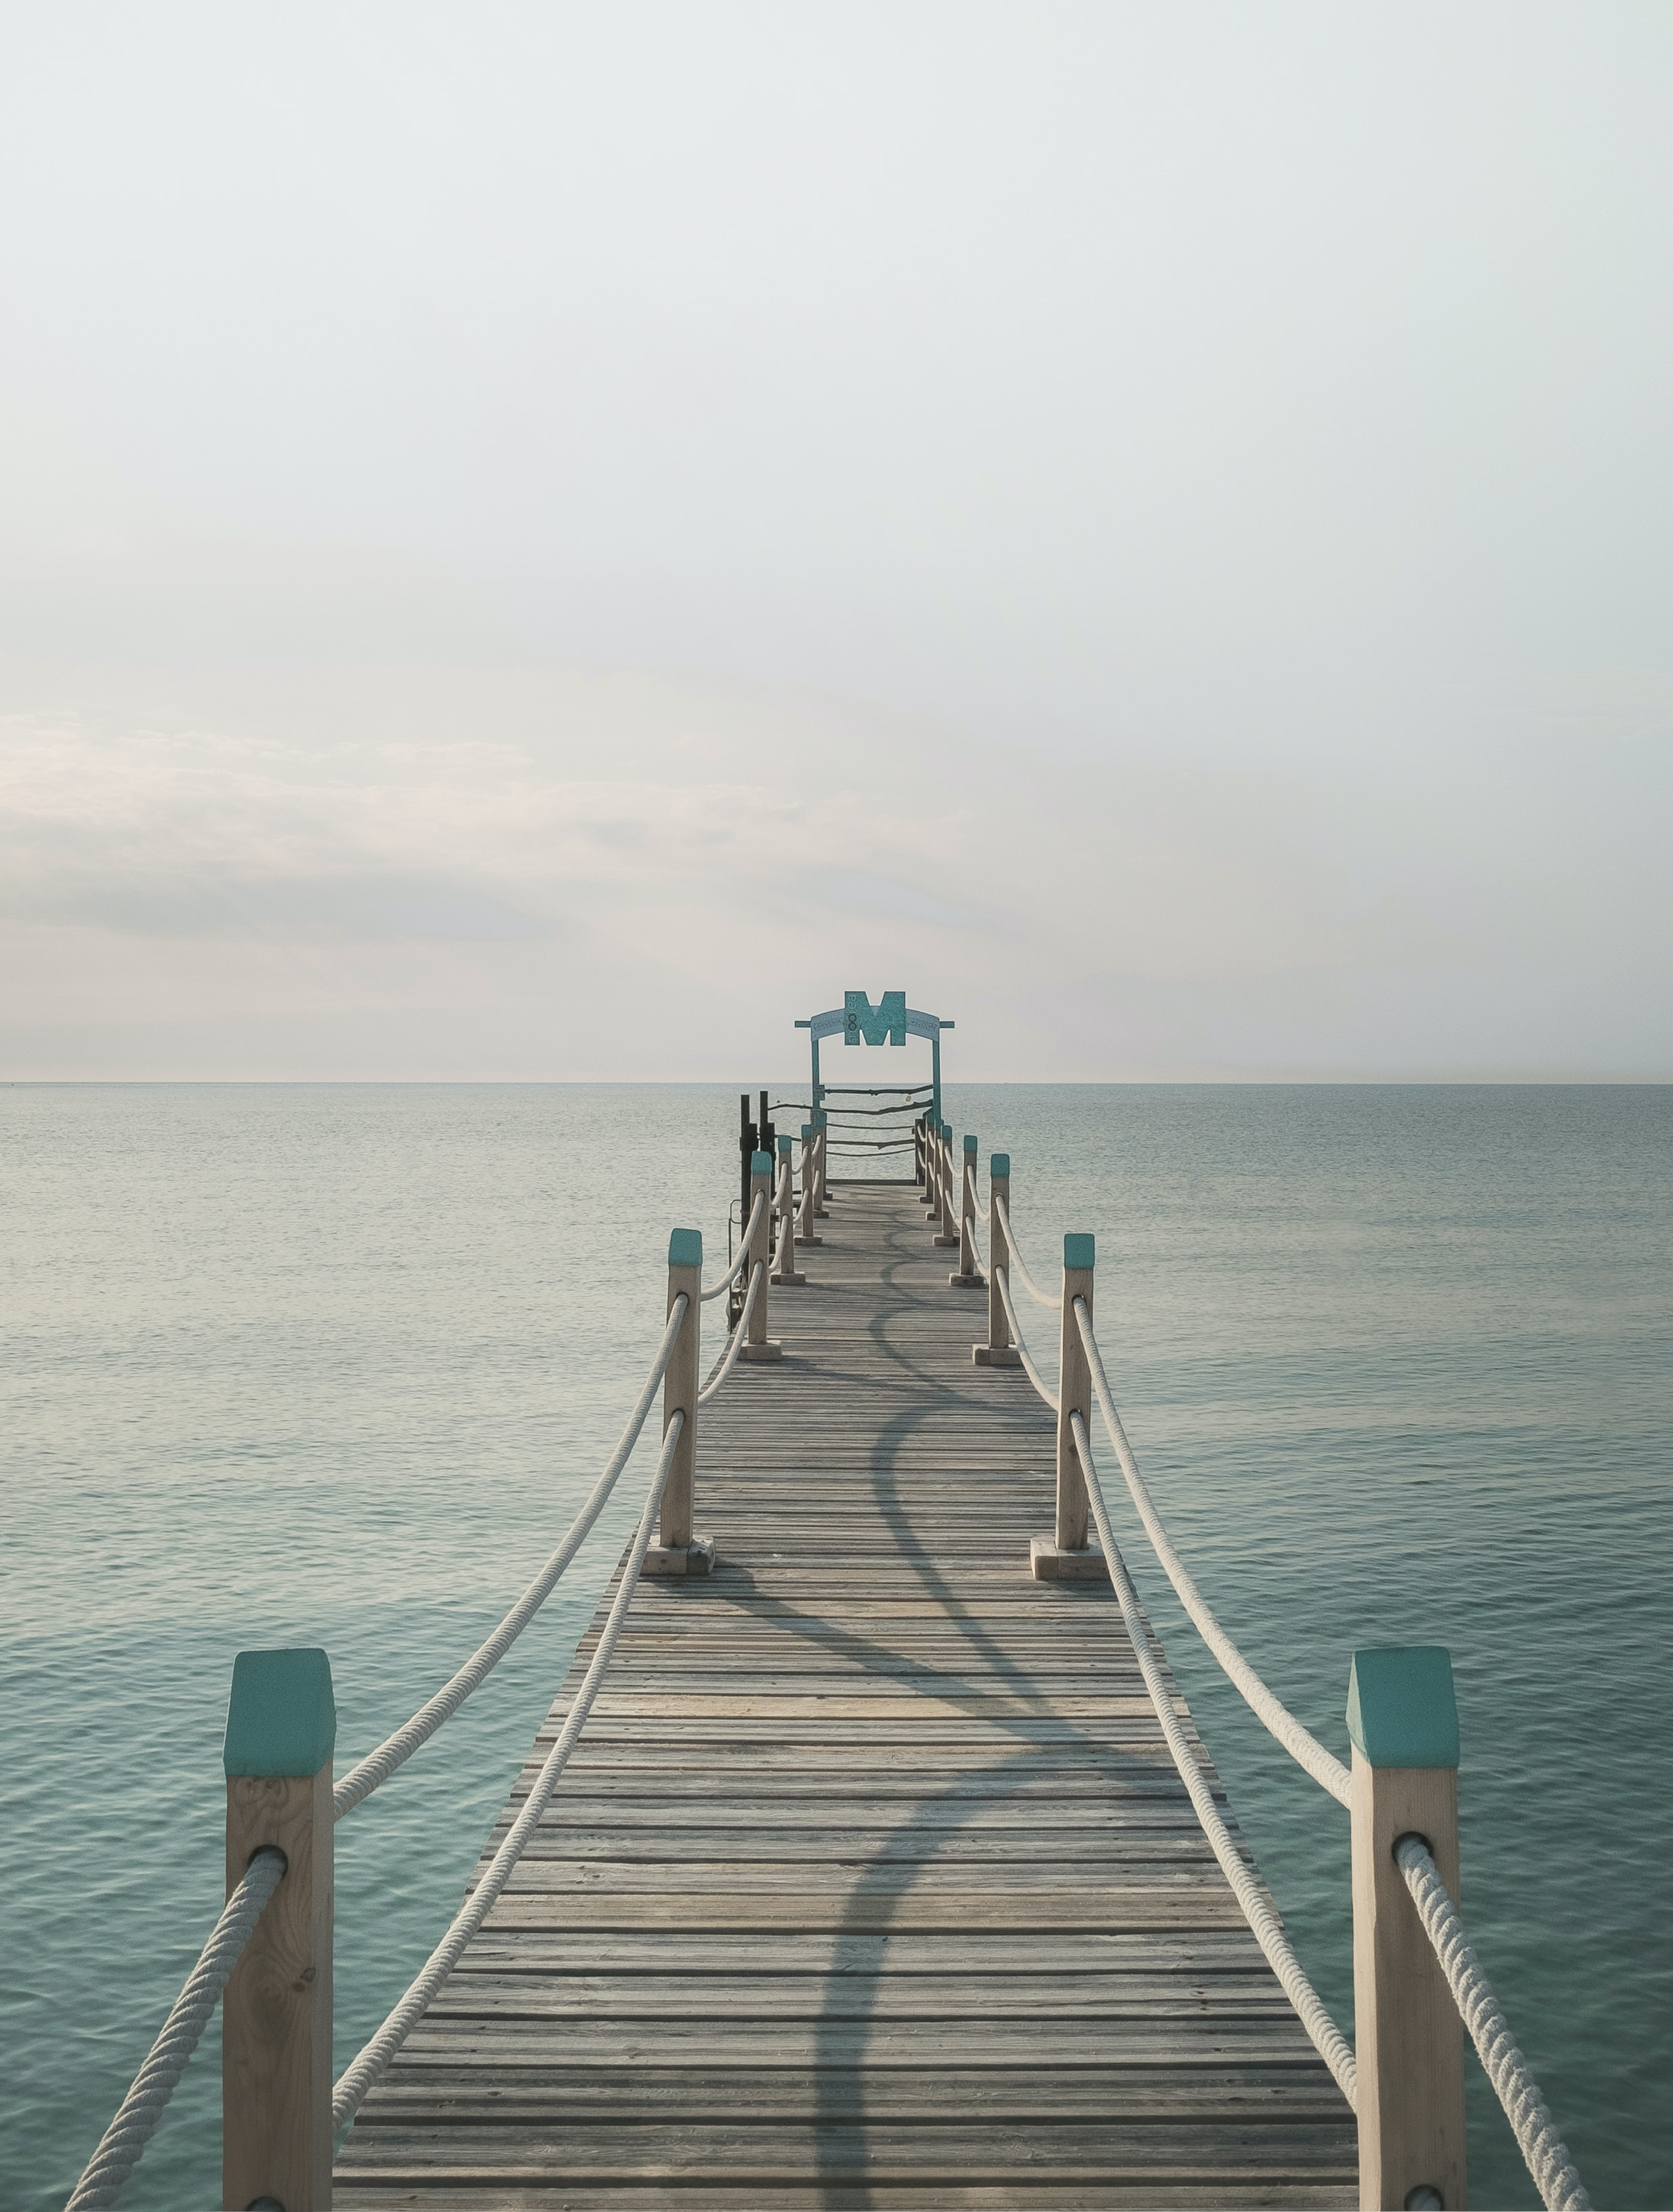 brown wooden pier near body of calm water